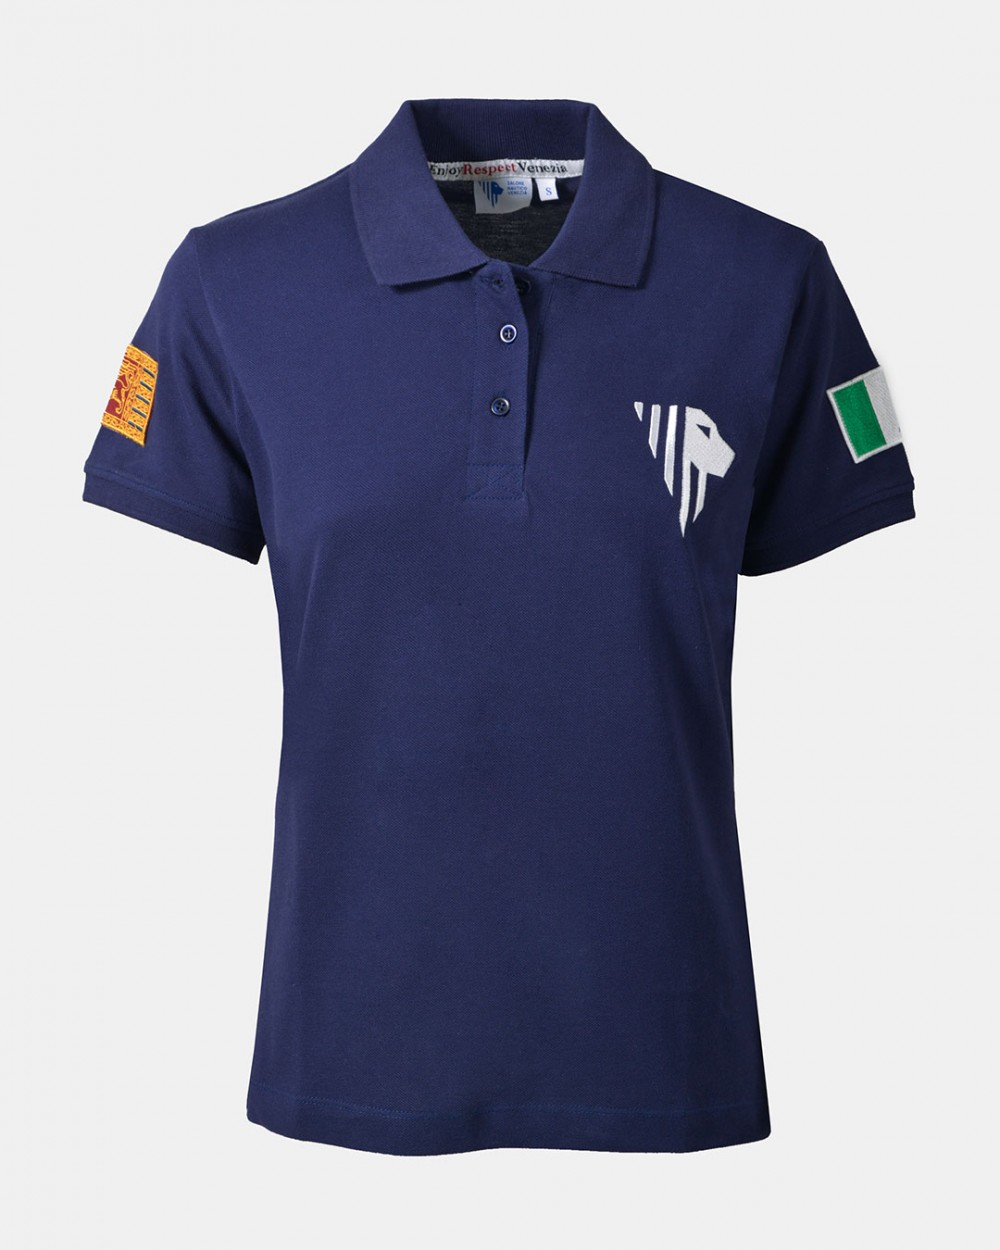 Women's blue polo front